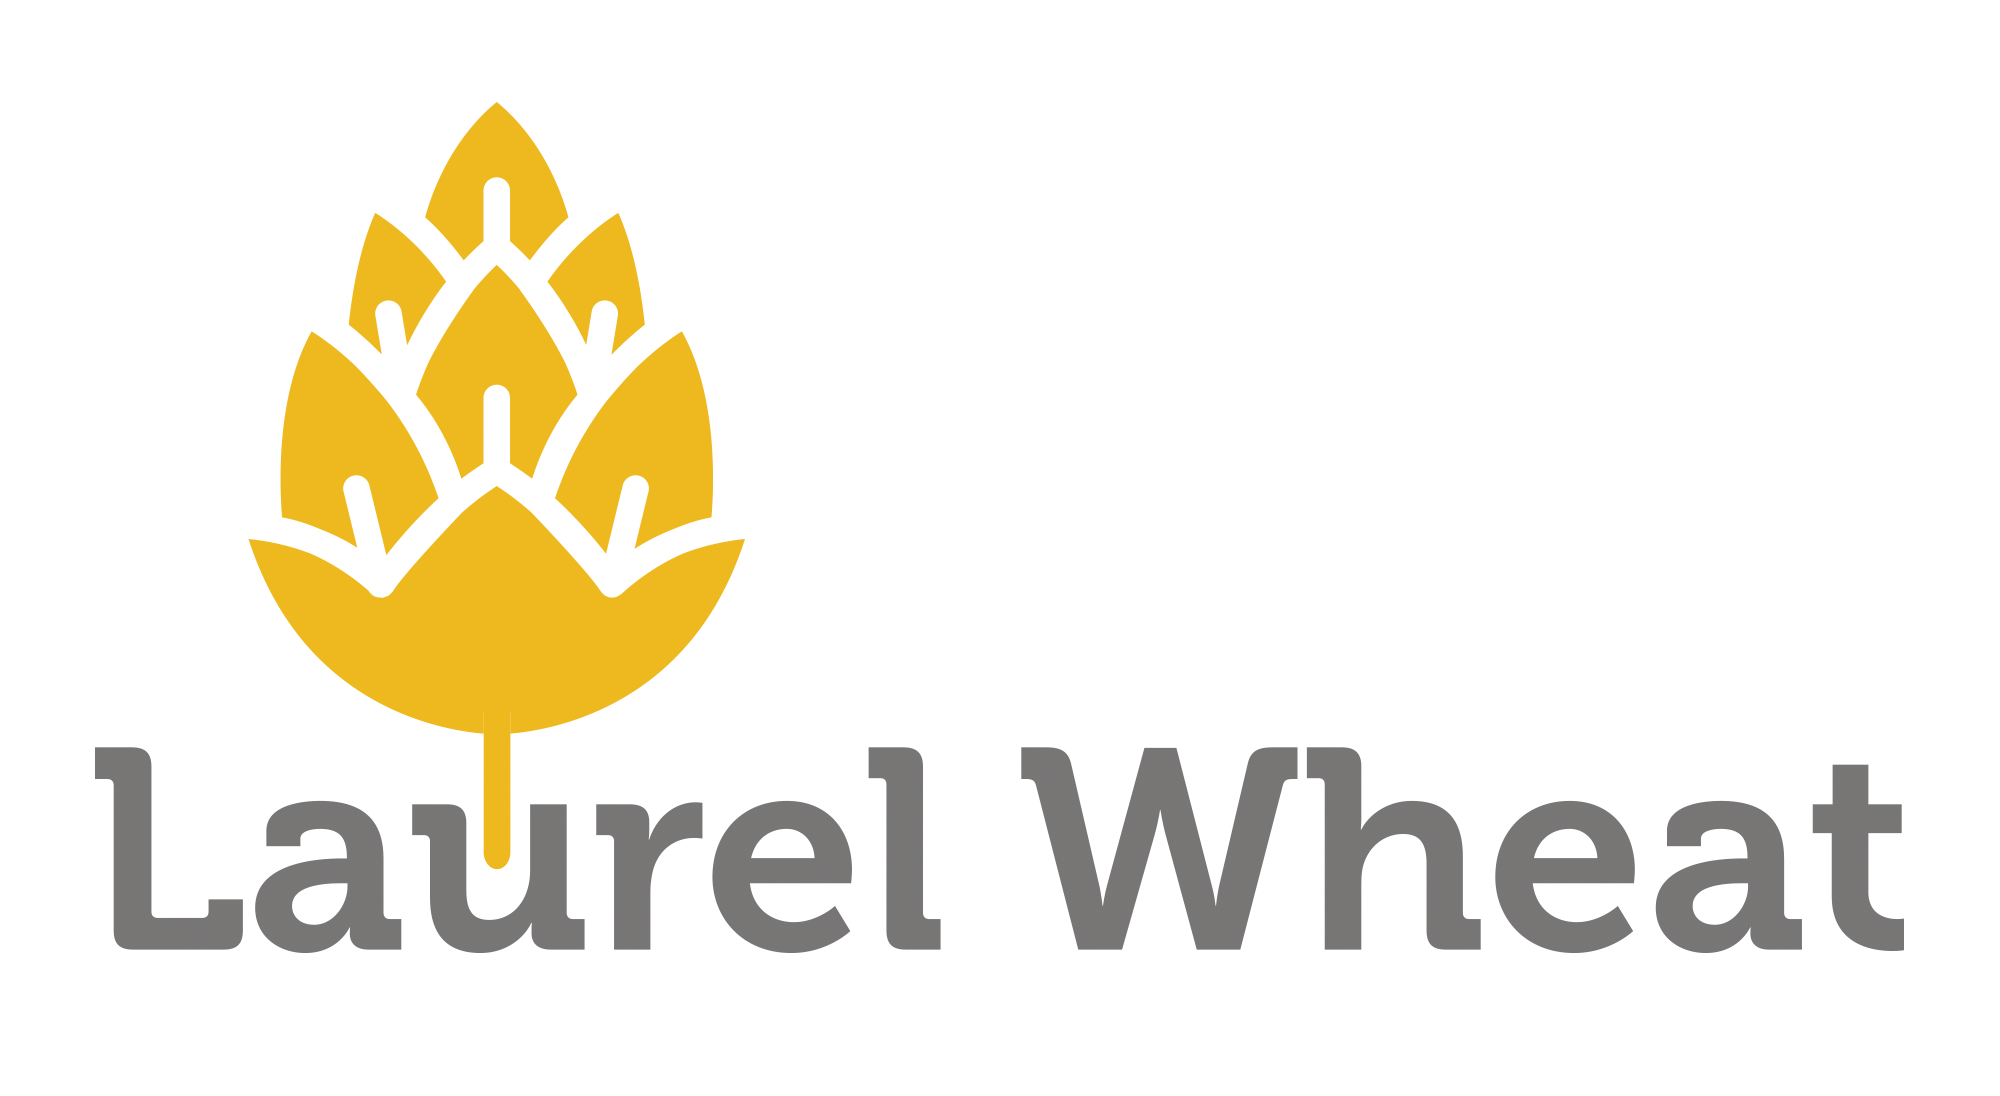 Laurel Wheat